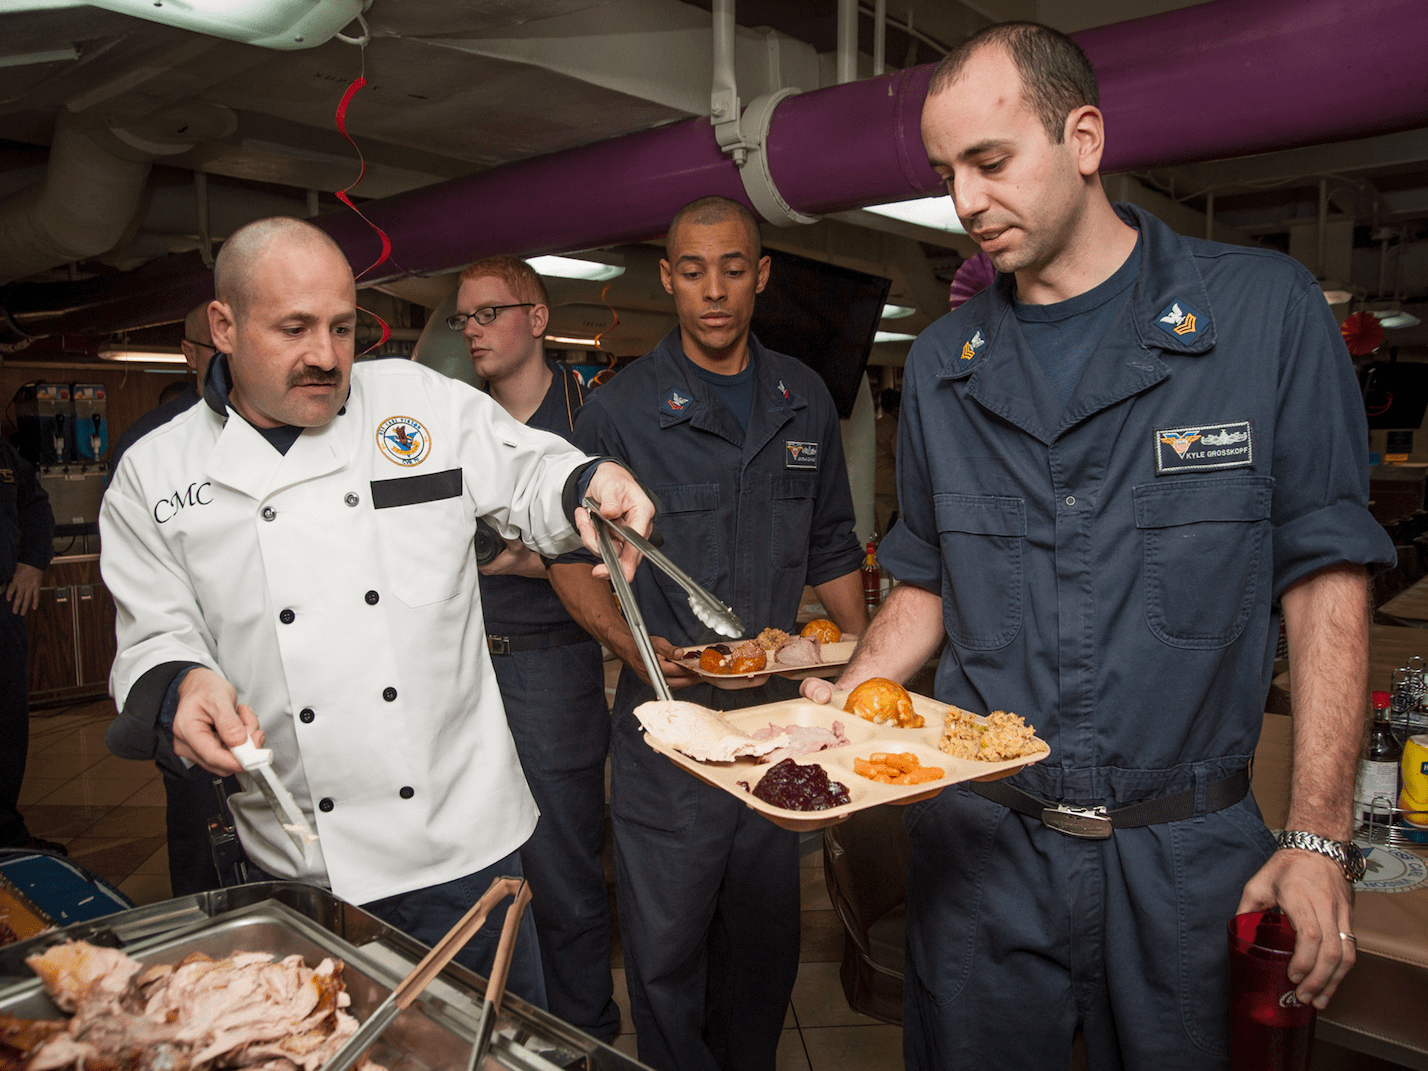 The Navy provides Thanksgiving turkey for crew members out at sea.